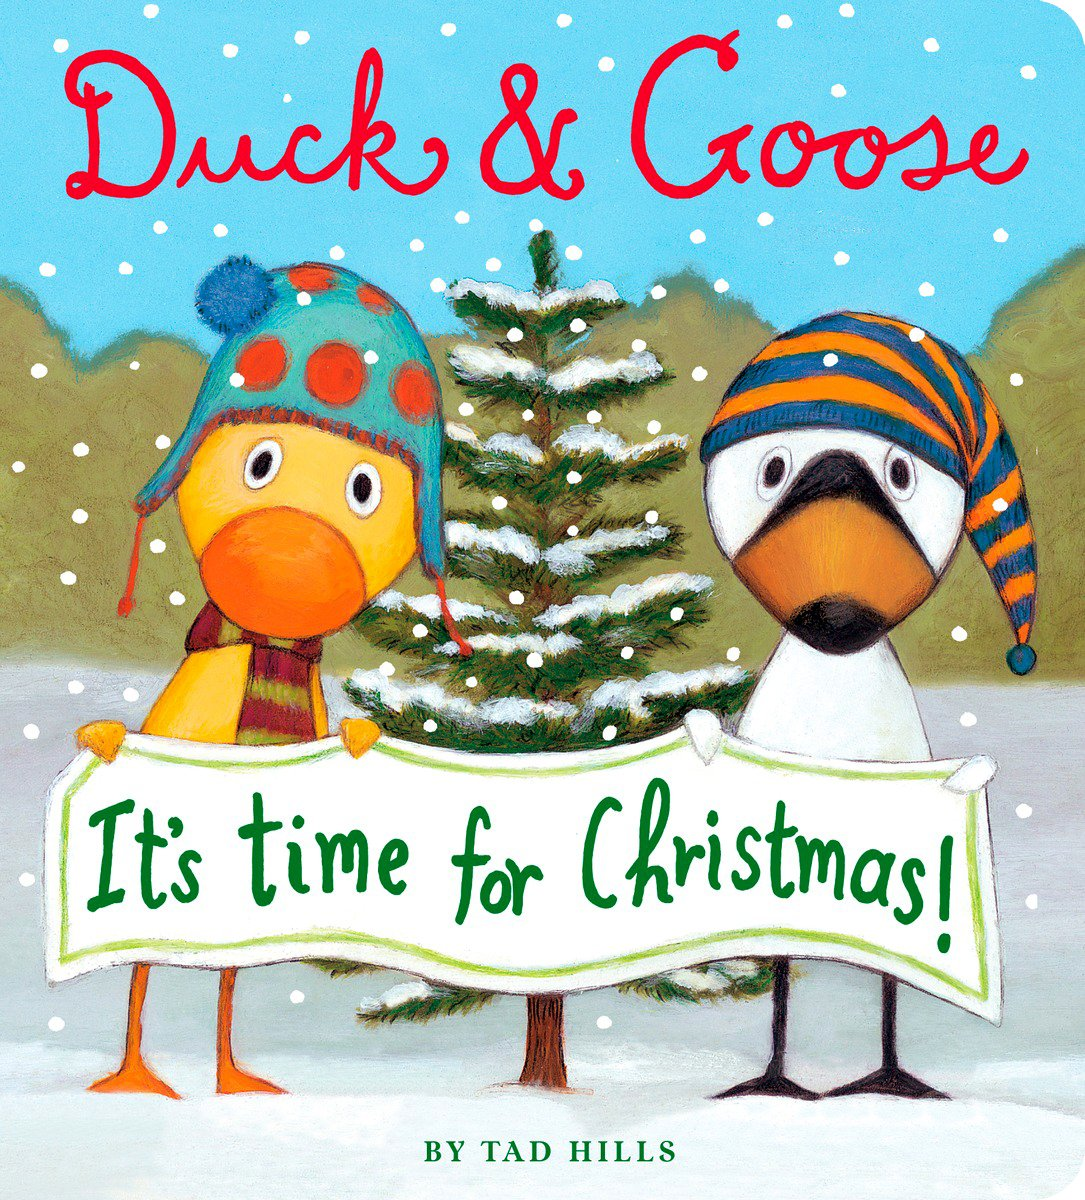 Duck and Goose it\'s Time for Christmas: Tad Hills: 9781910126608 ...